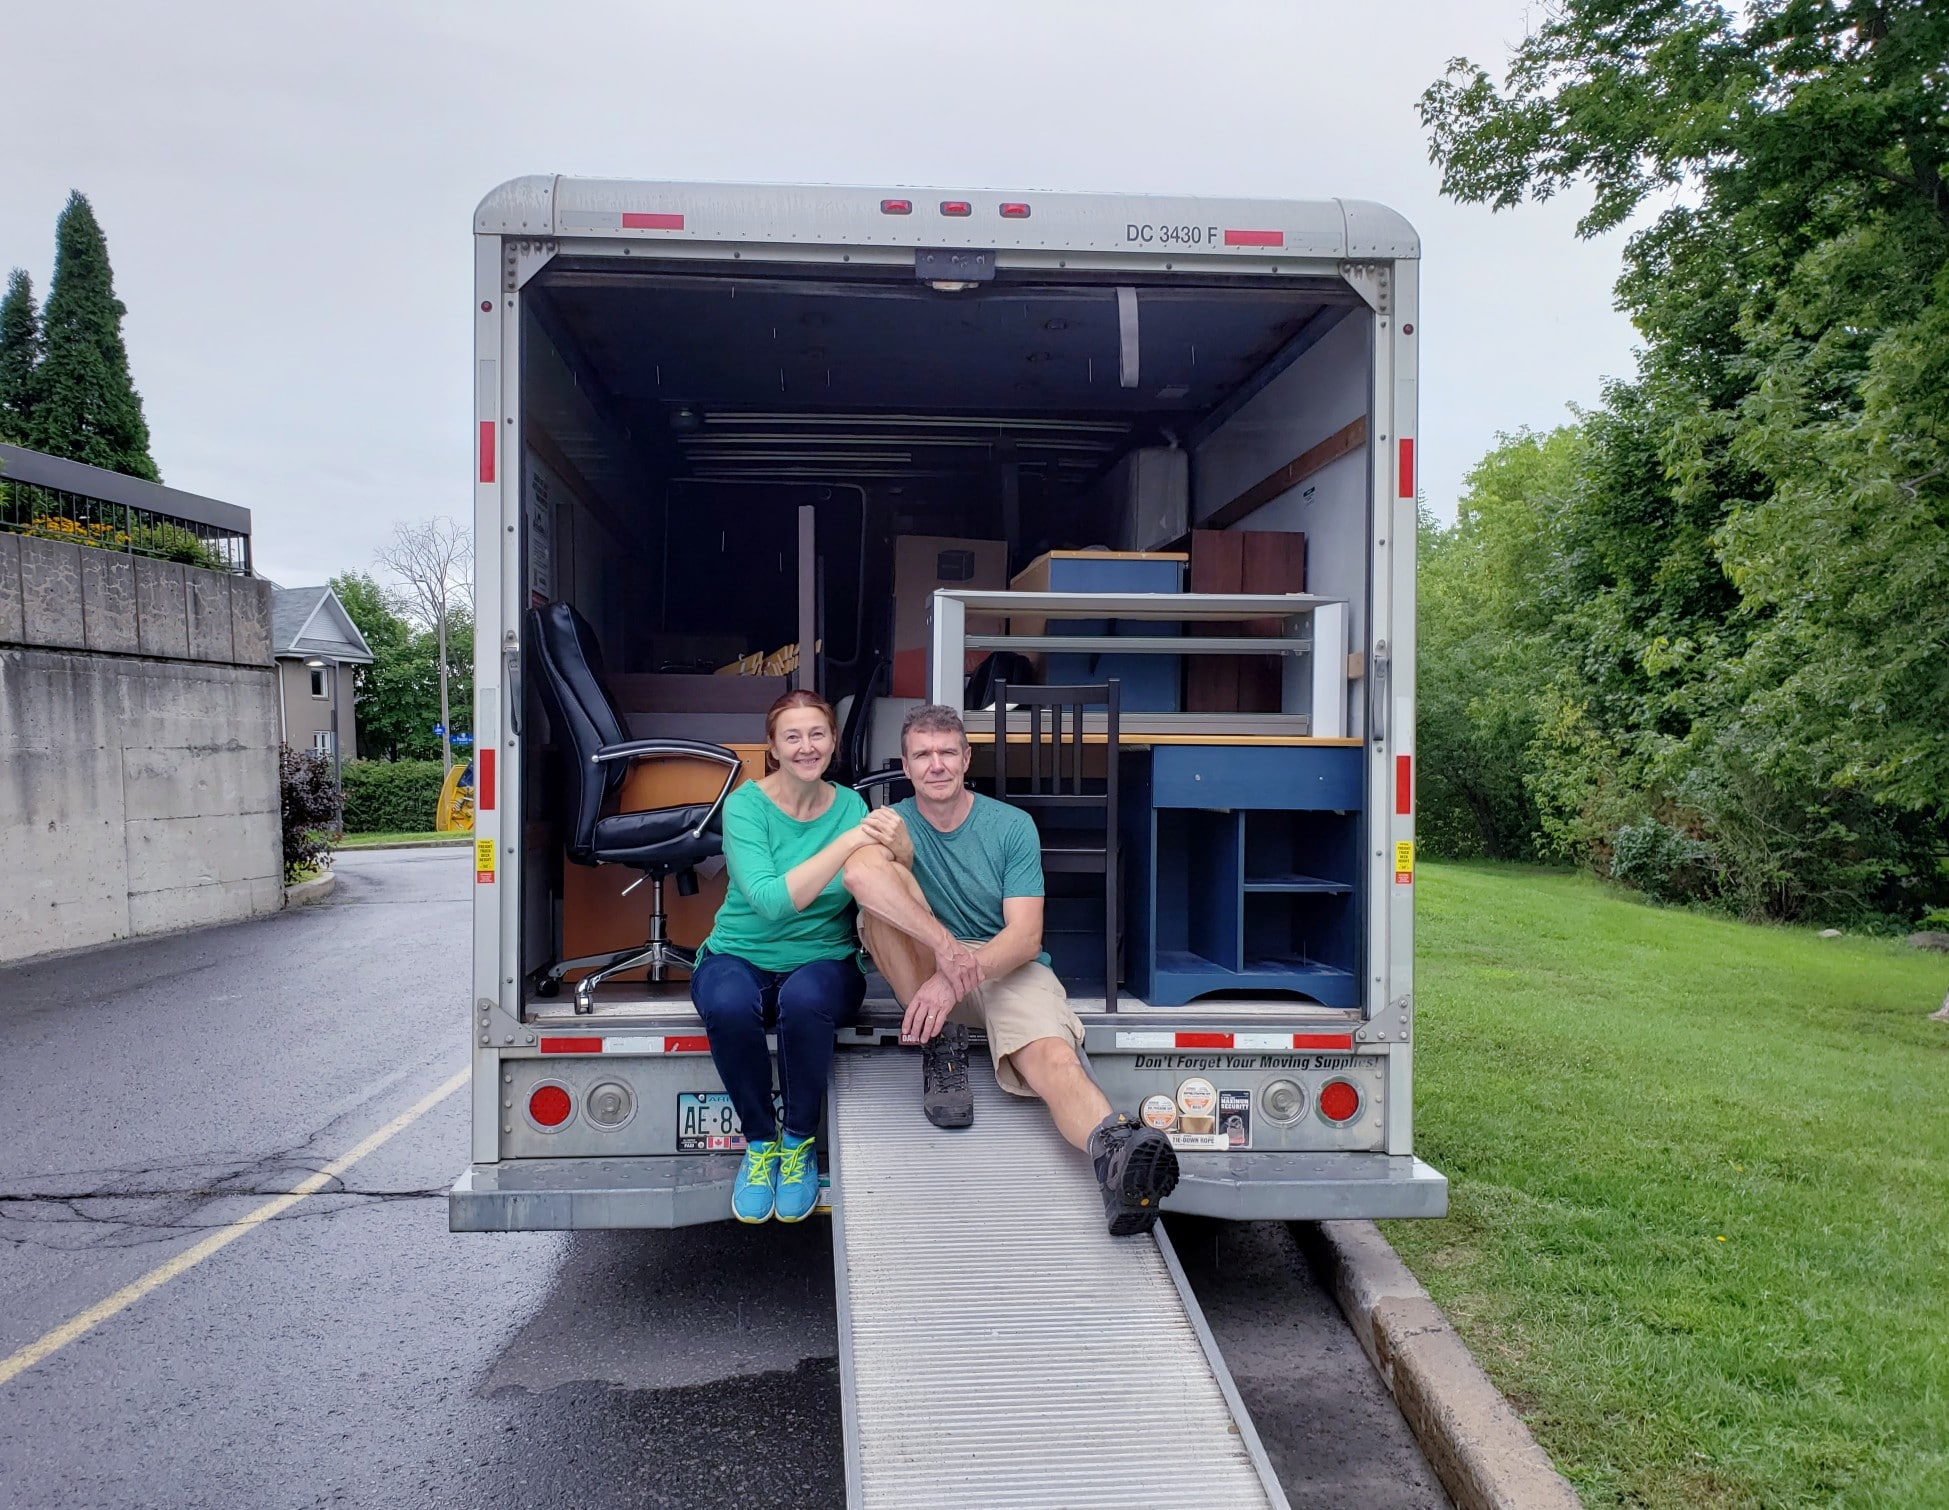 Couple is ready to move into new place--sitting on a moving truck filled with furniture